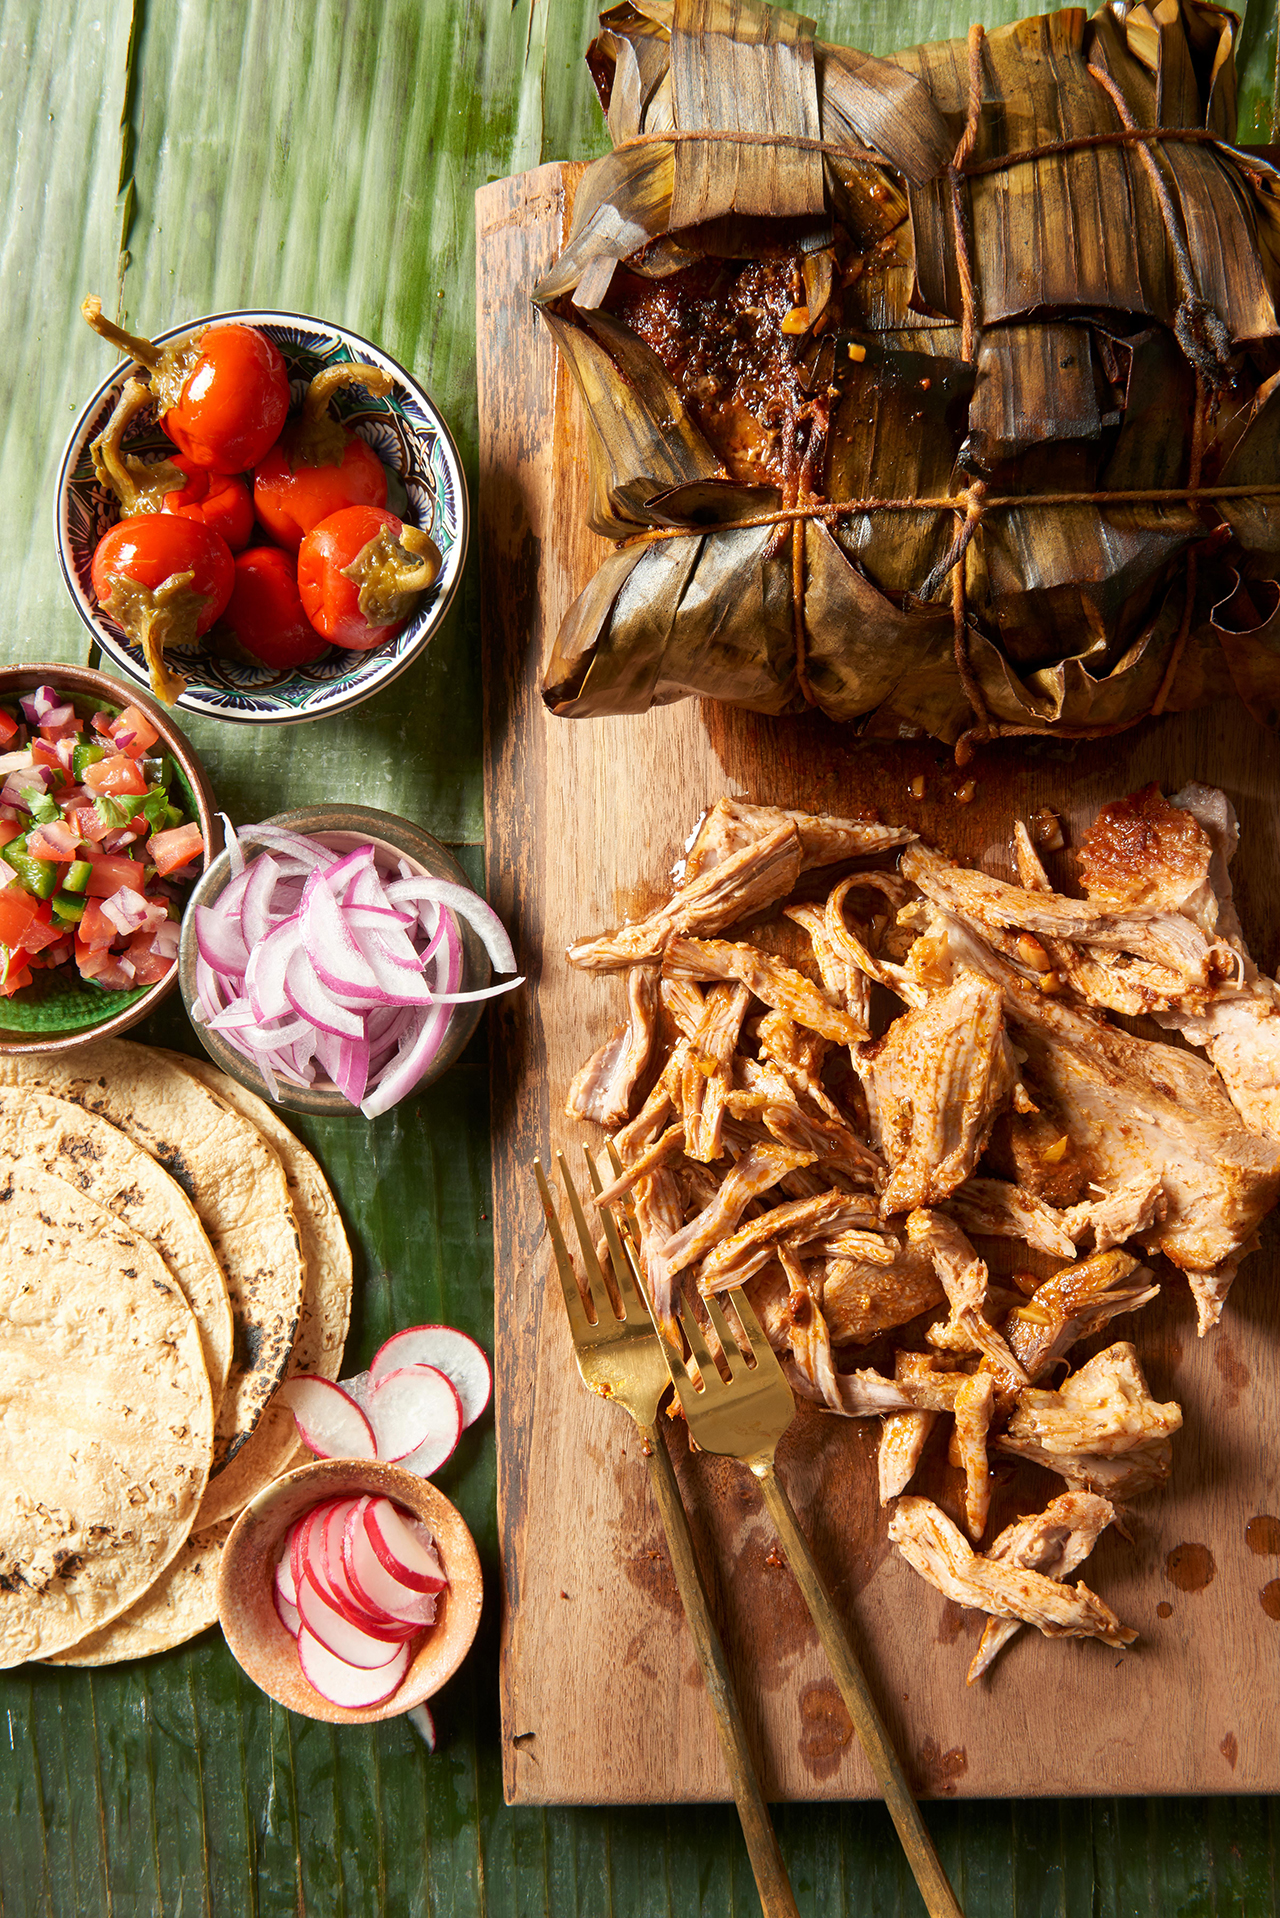 Smoked Cochinita Pibil with vegetable toppings